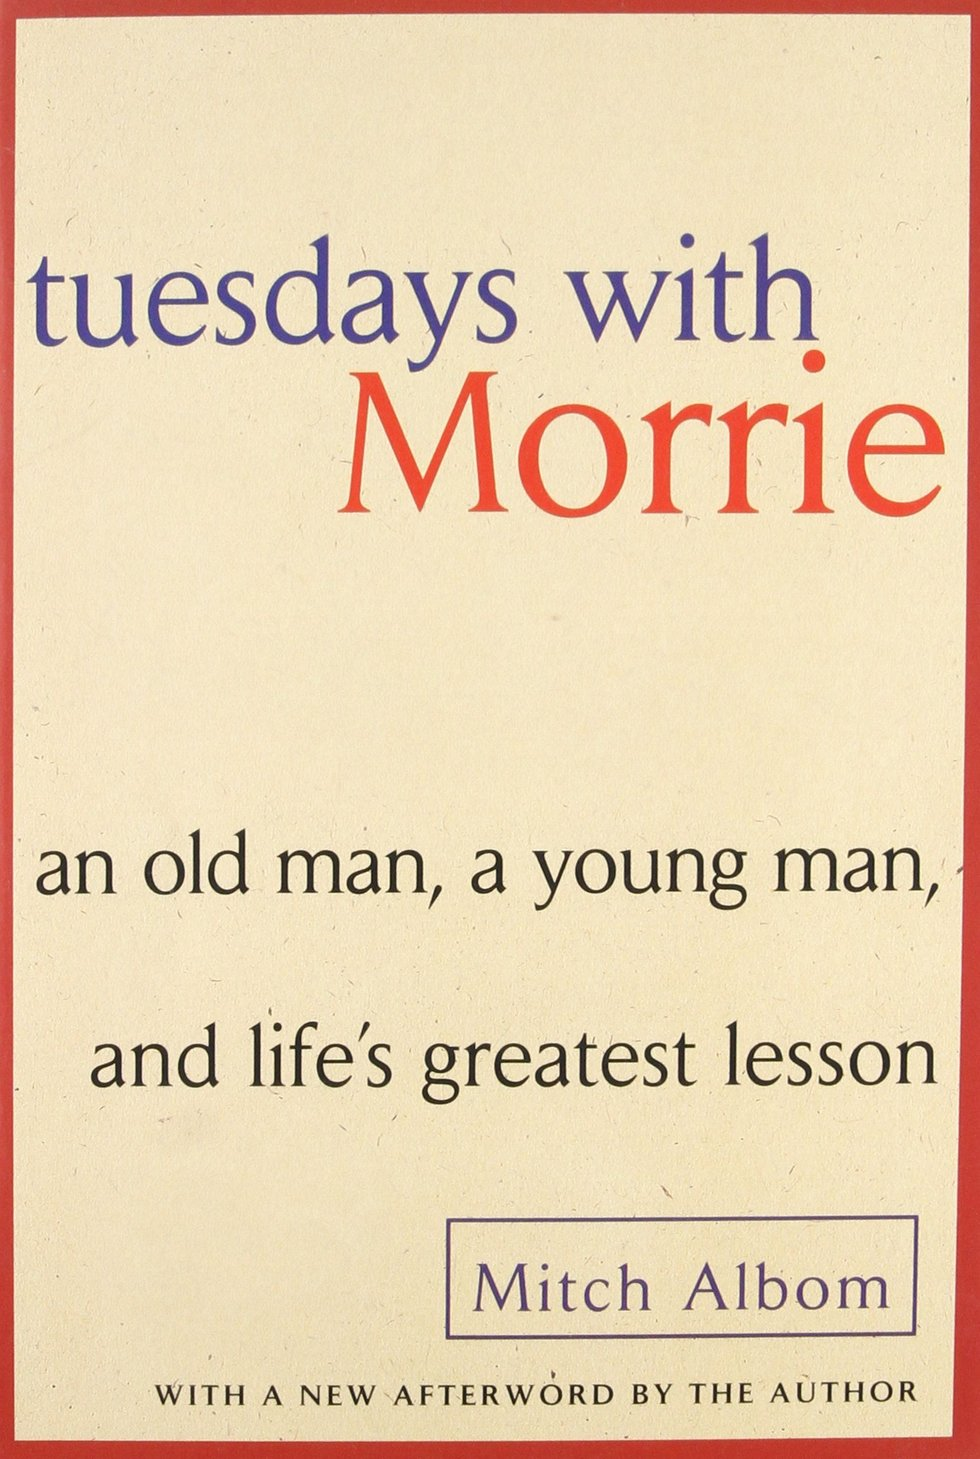 tuesdays with morrie book report Bookreport tuesdays with morrie: an old man, a young man, and life's greatest lesson by mitch albom submit by: jonick boguat submit to: christelyn mandaya sti.